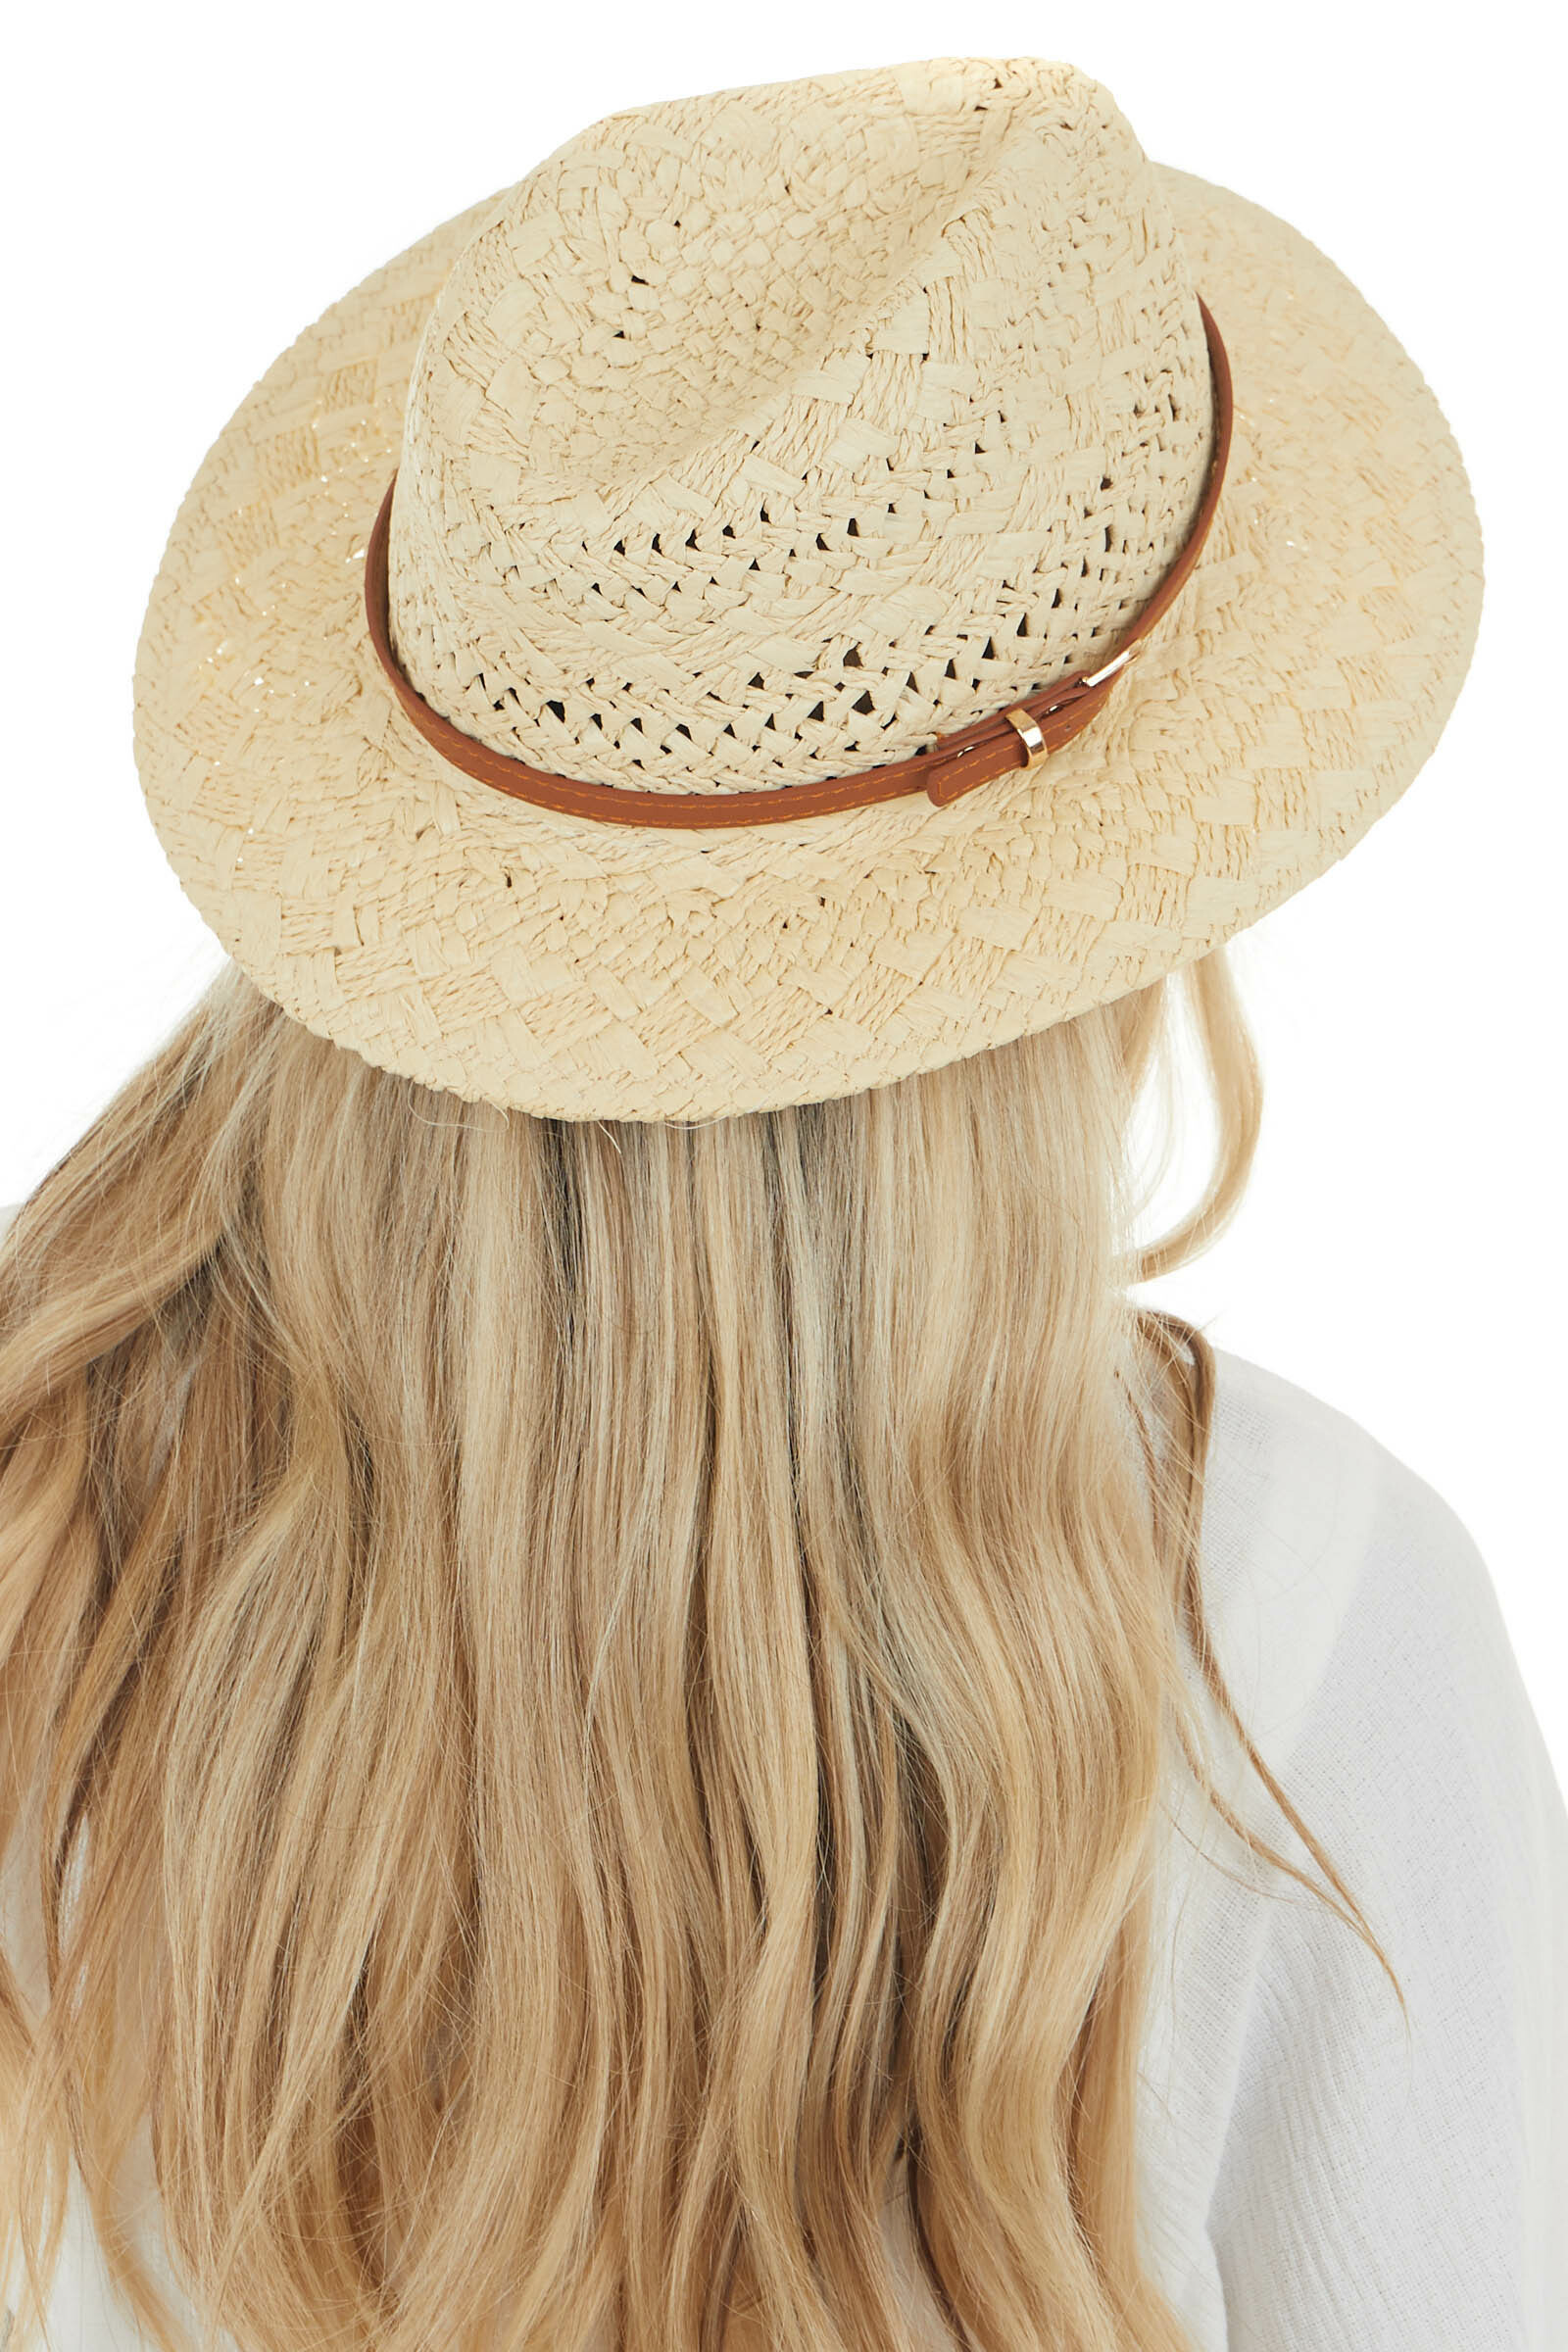 Camel Straw Boater Hat with Brown Band